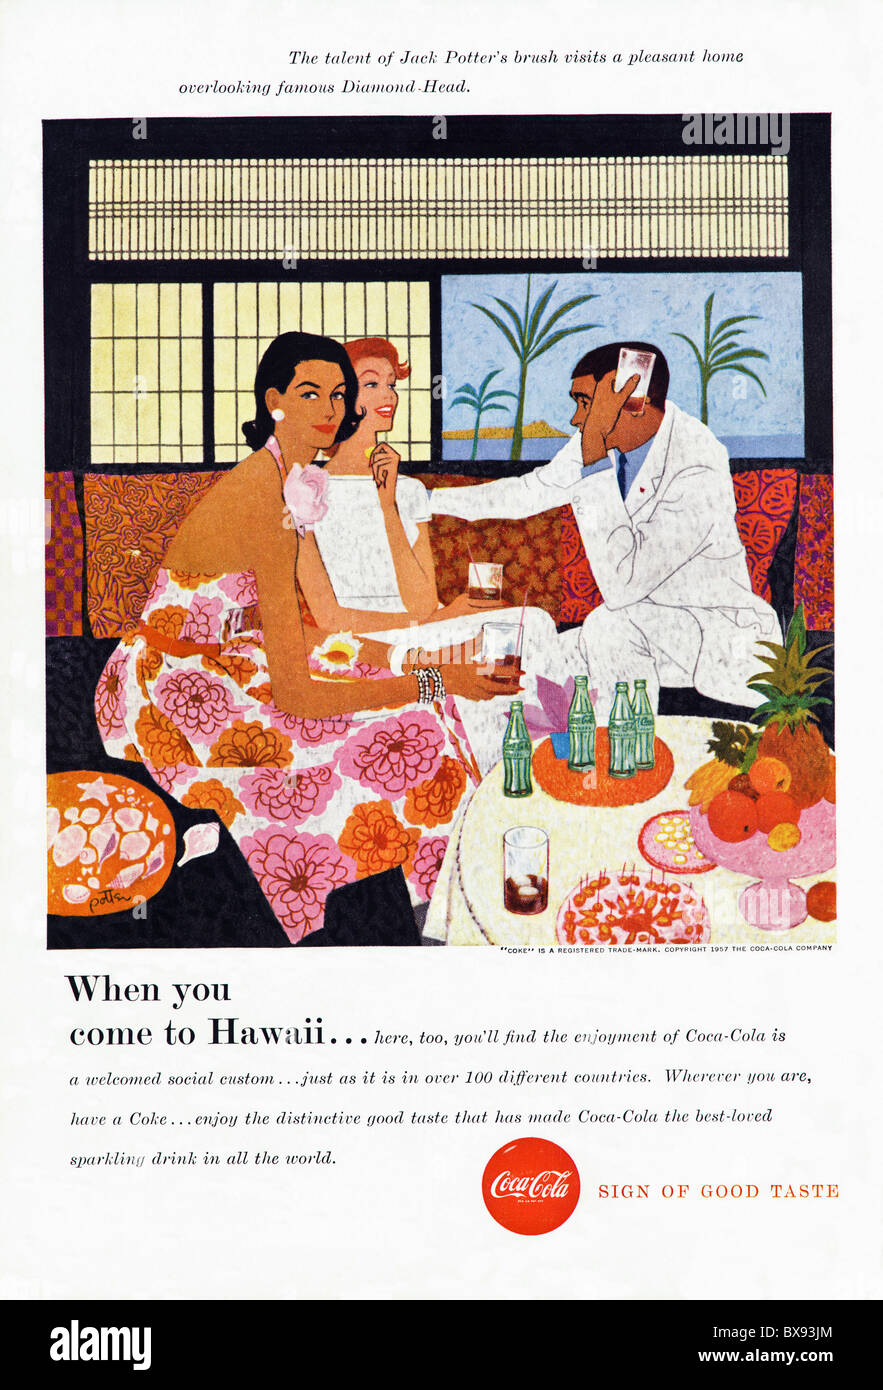 Classic Coca Cola colour advert featuring painting of Hawaii by artist Jack Potter in American magazine circa 1957 - Stock Image